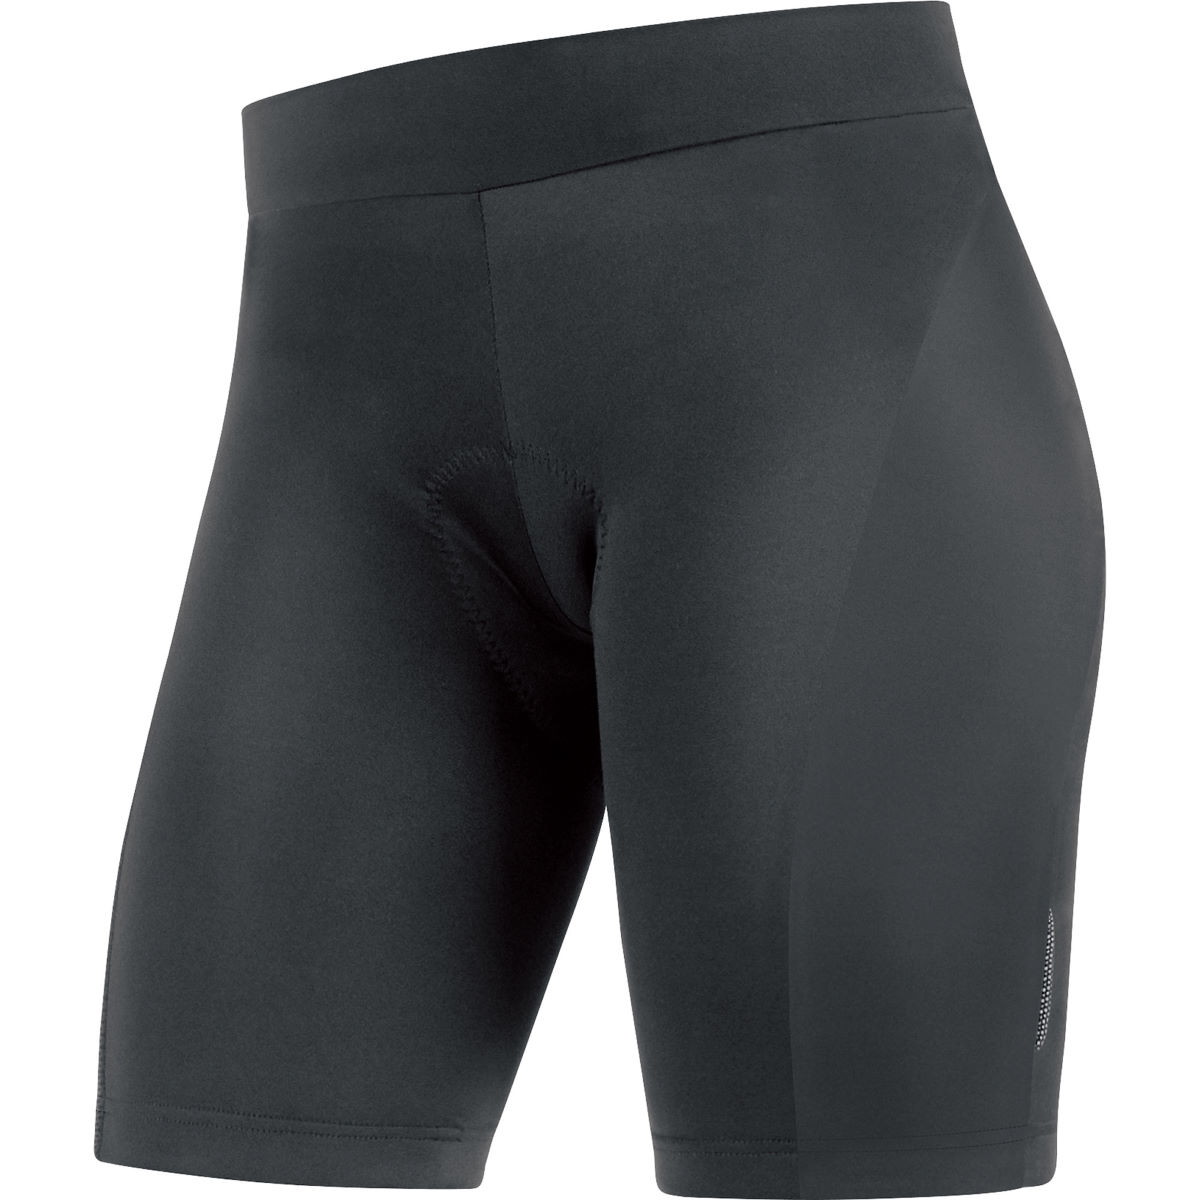 Gore Bike Wear Women's Element Short+ - Medium 38 Black